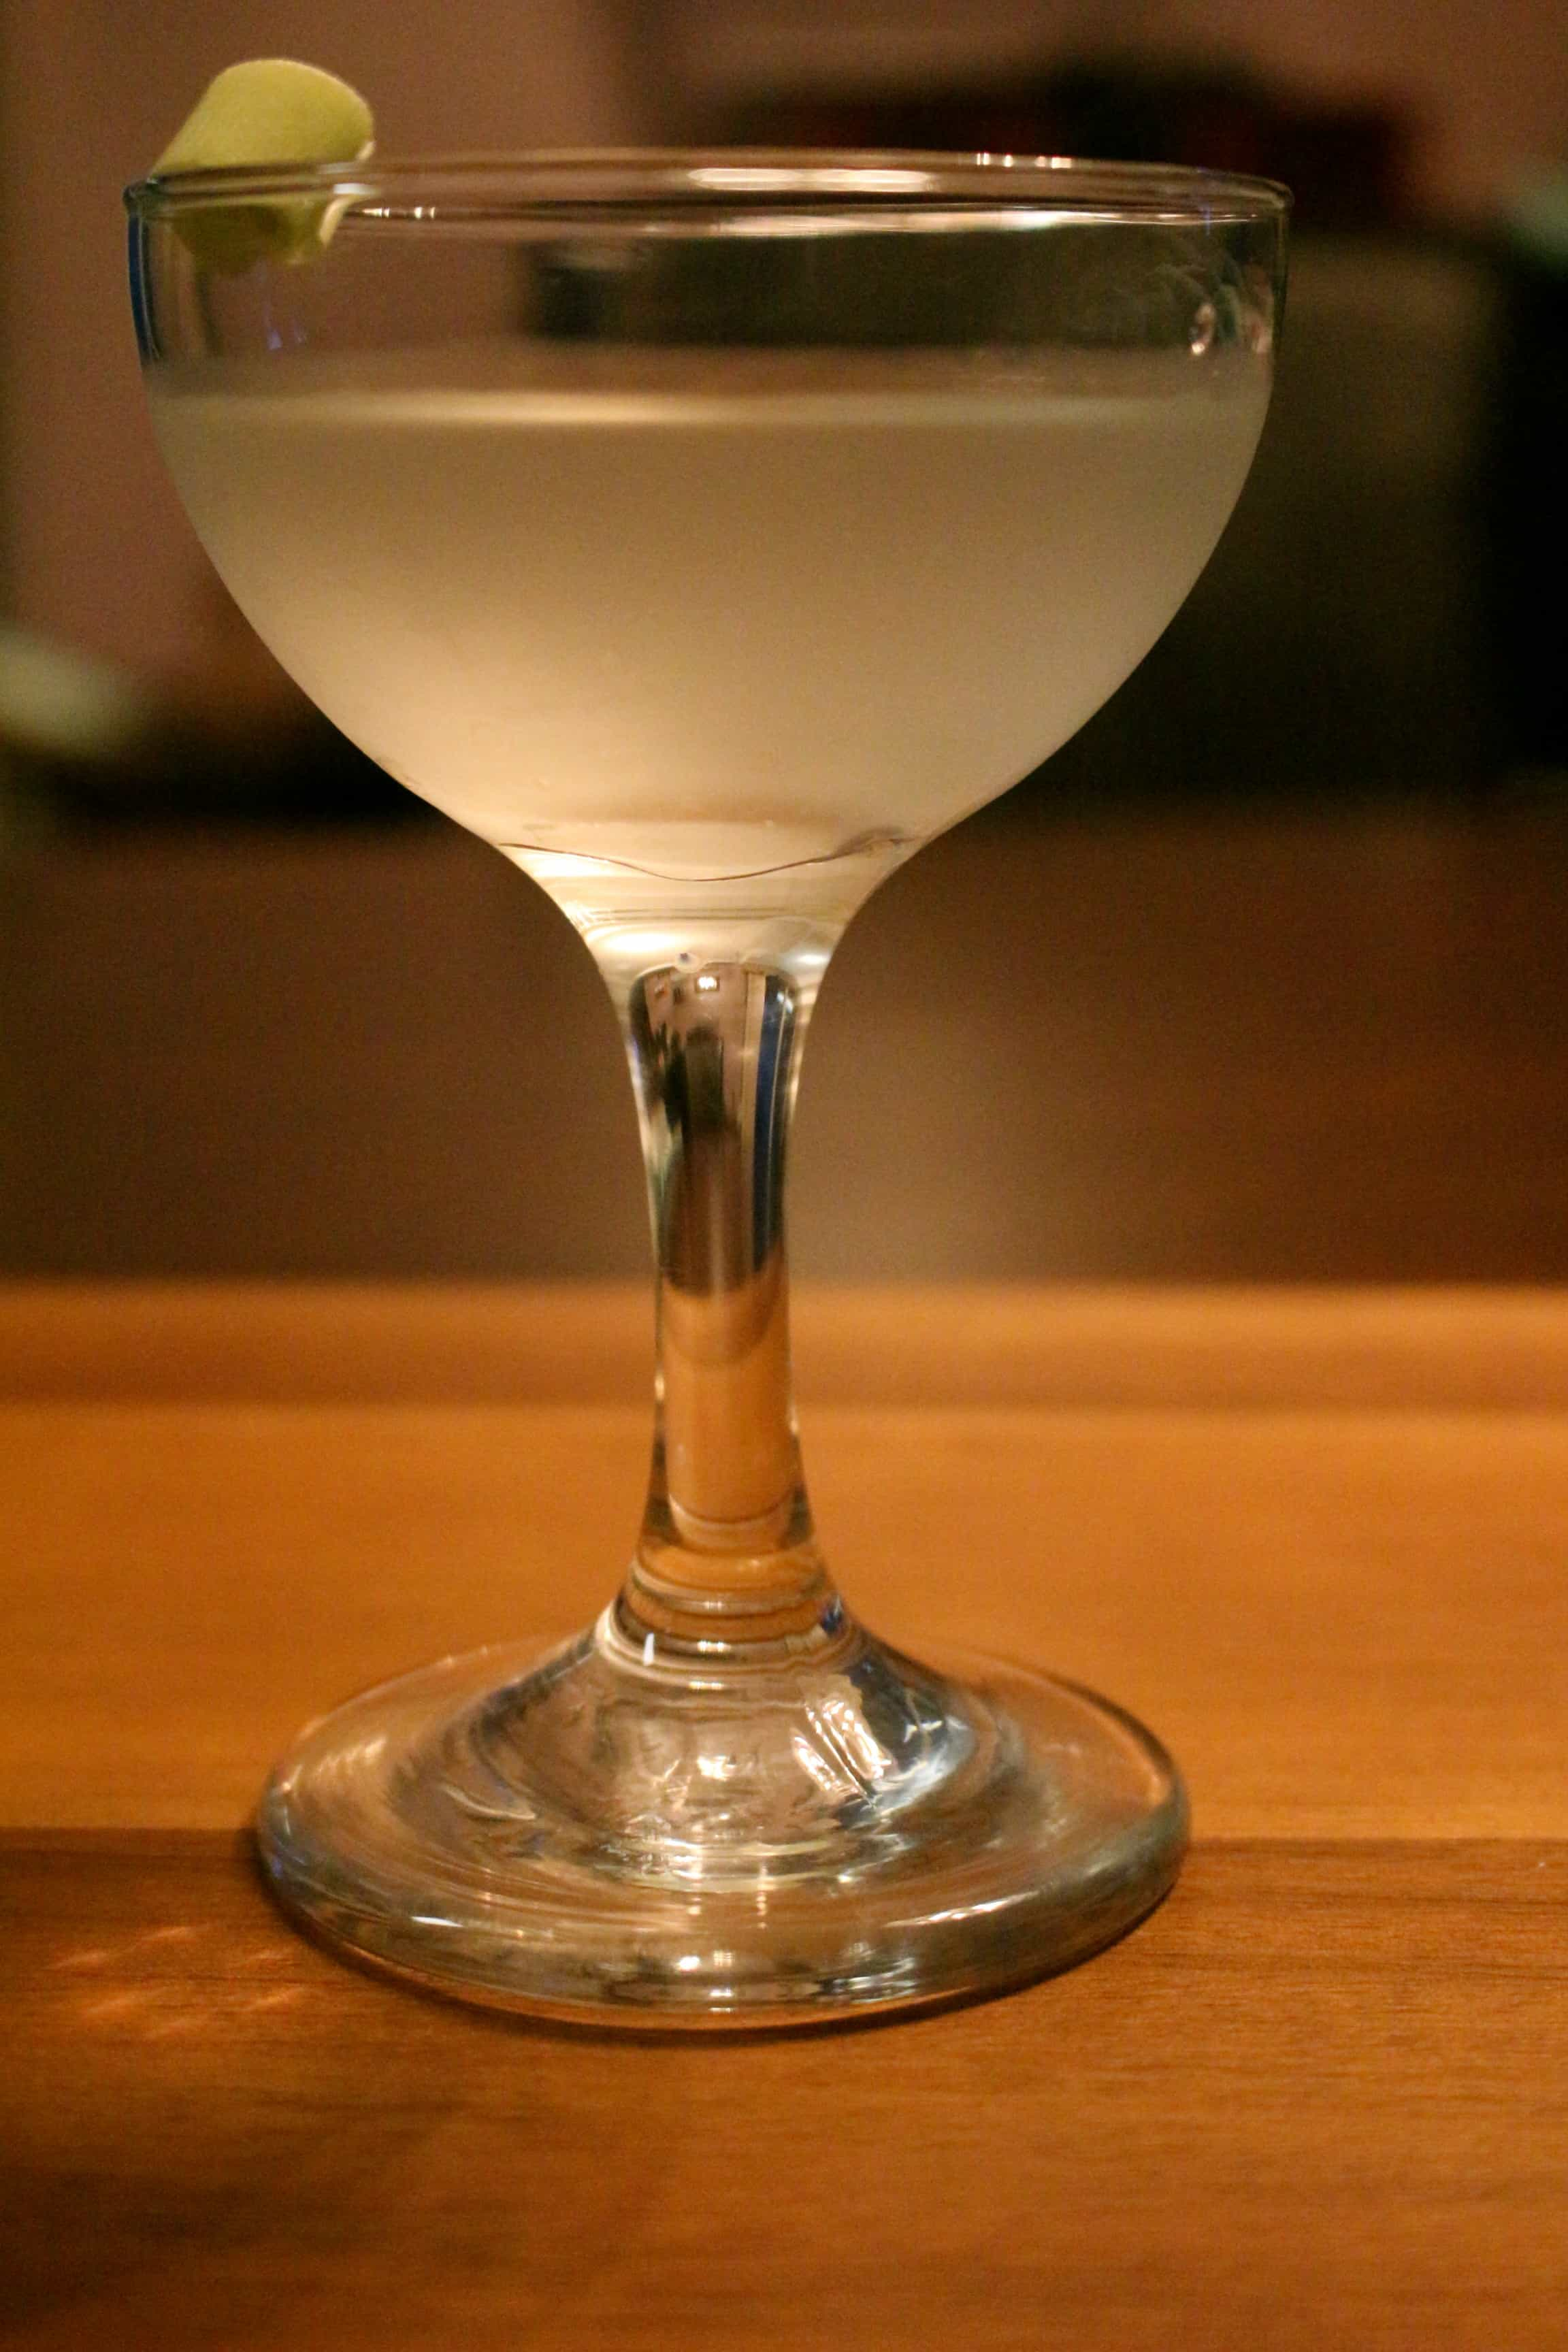 Don't Judge Me Mondays: Lemongrass Martini